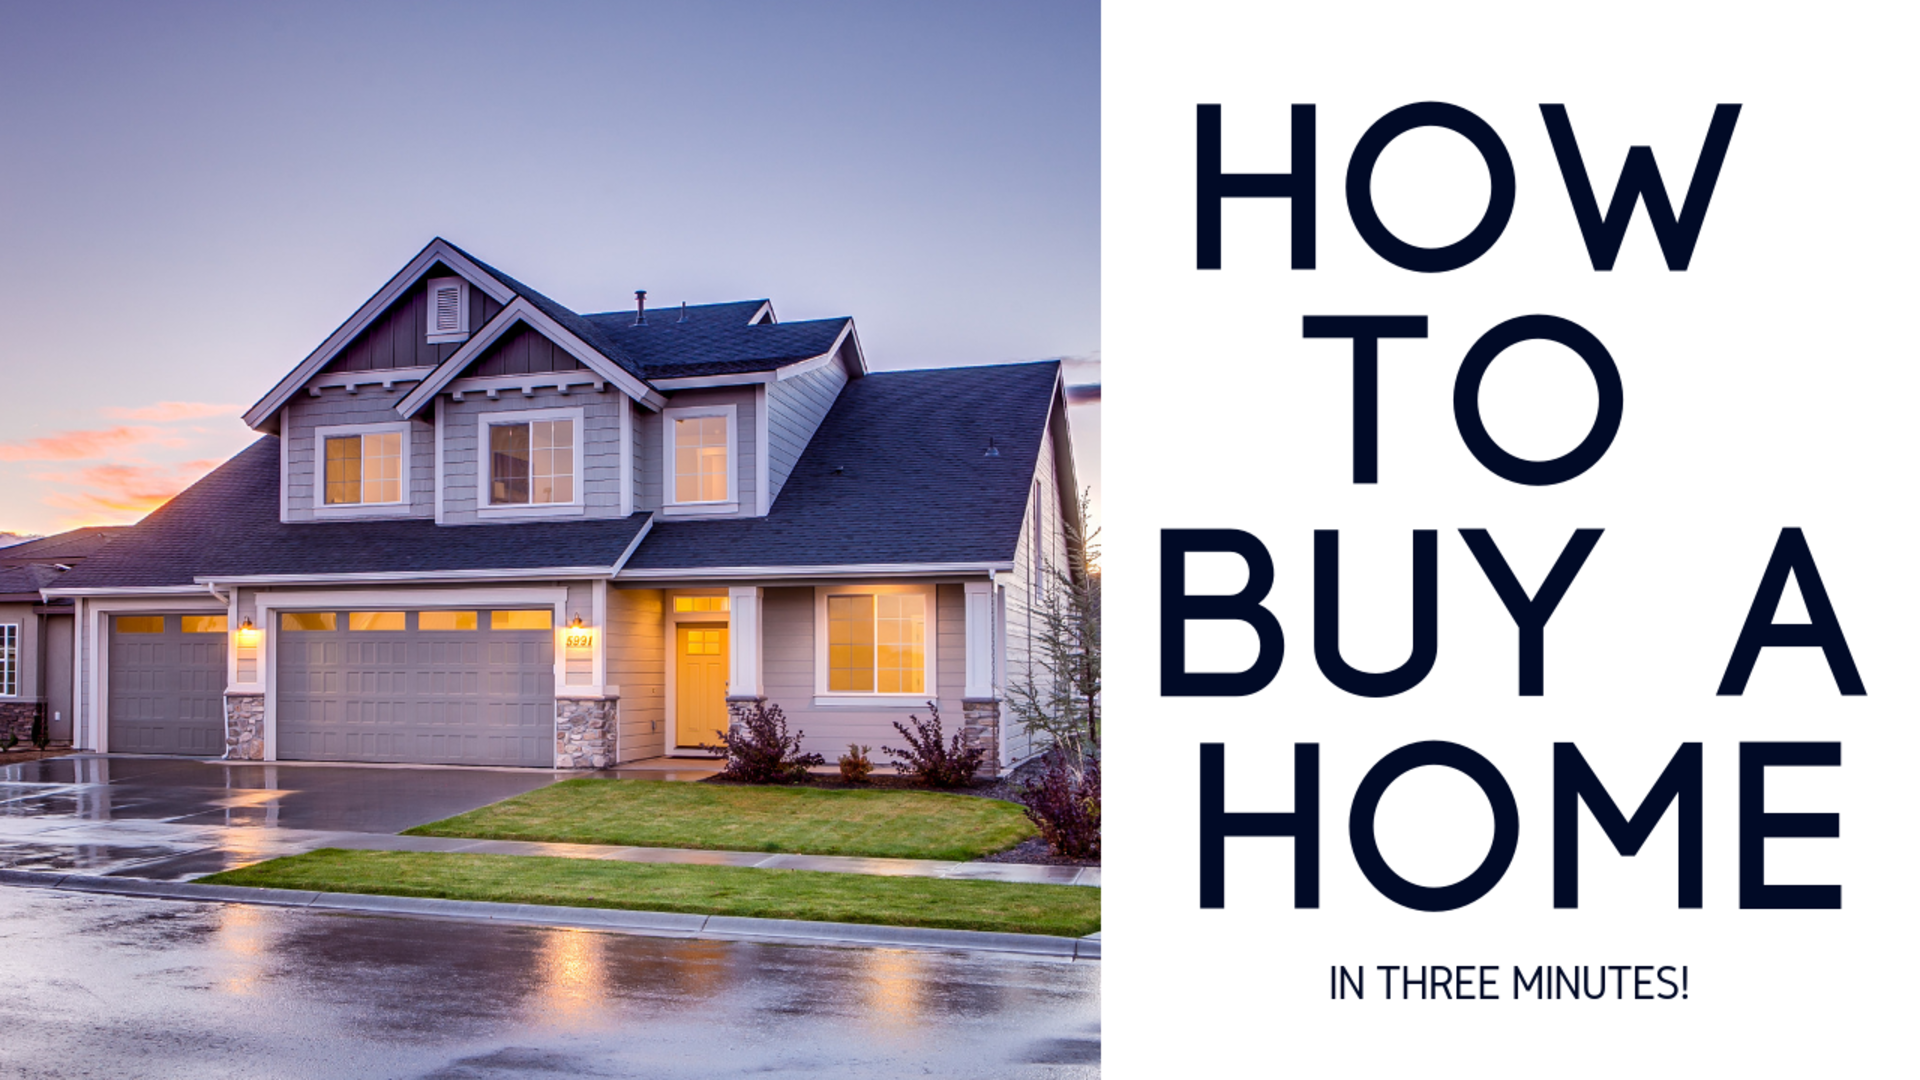 How To Buy a Home in 3 Minutes